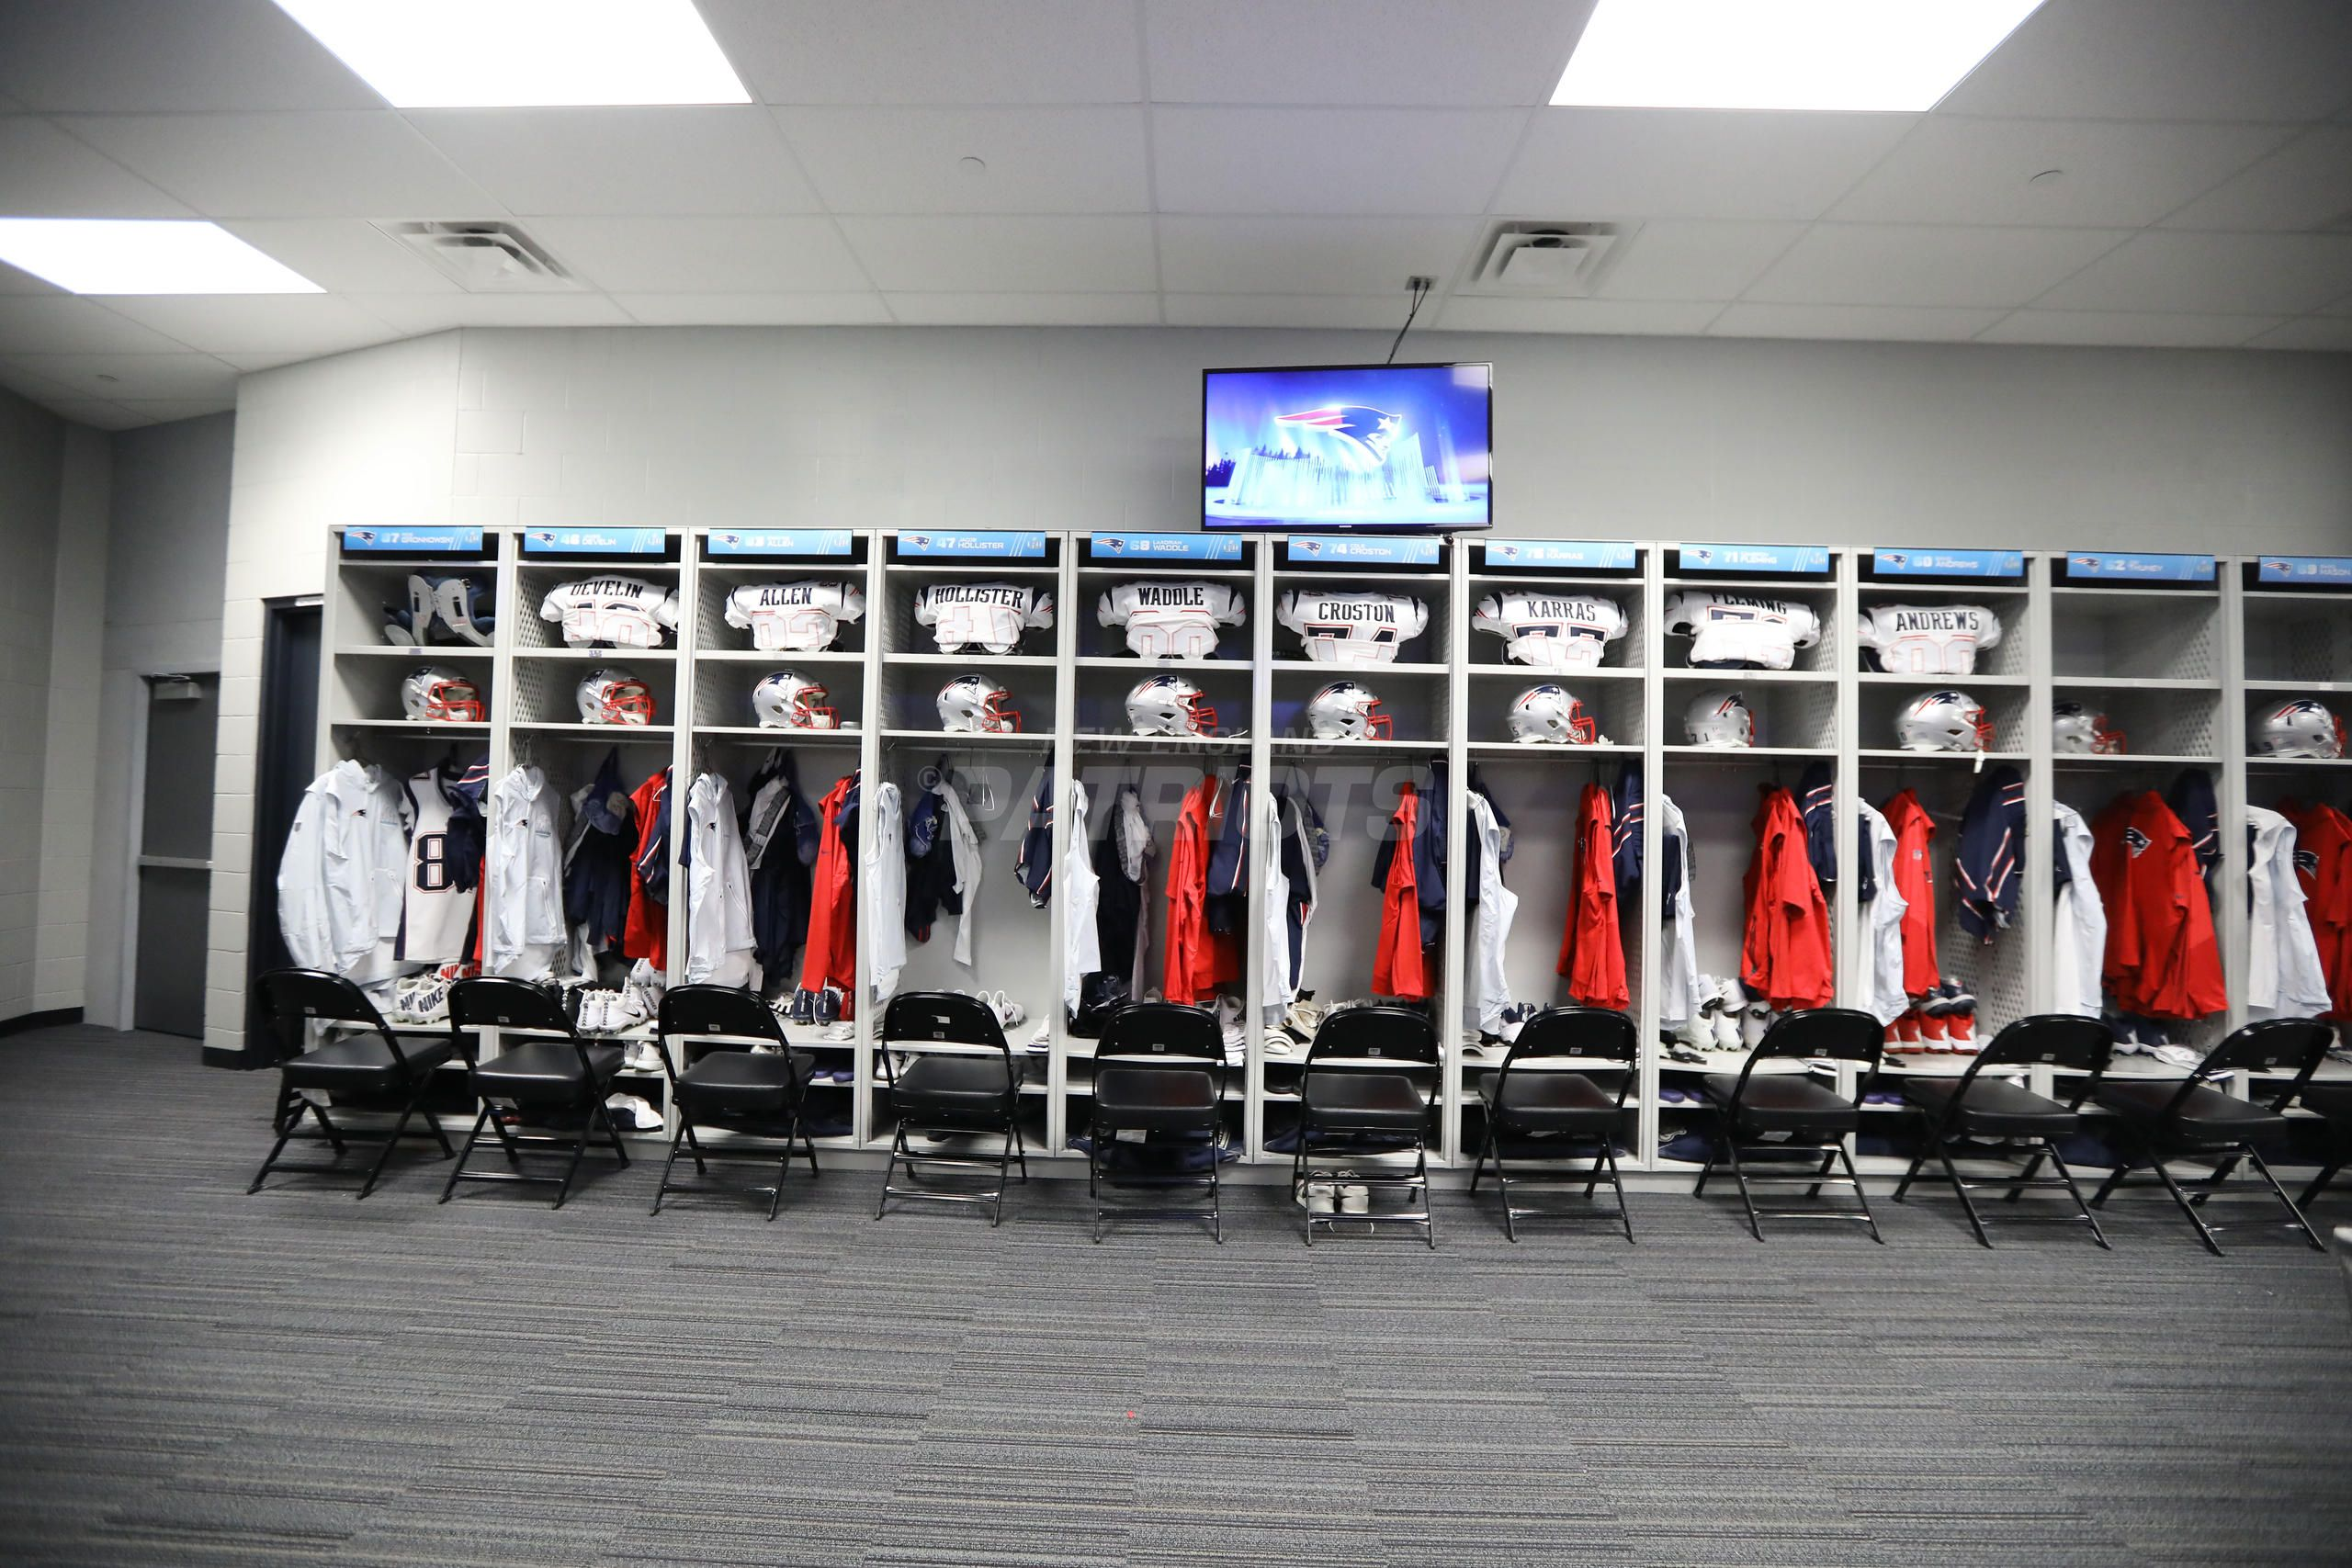 Super Bowl Lii Pregame Inside The Patriots Locker Room Lockers Locker Room Patriots